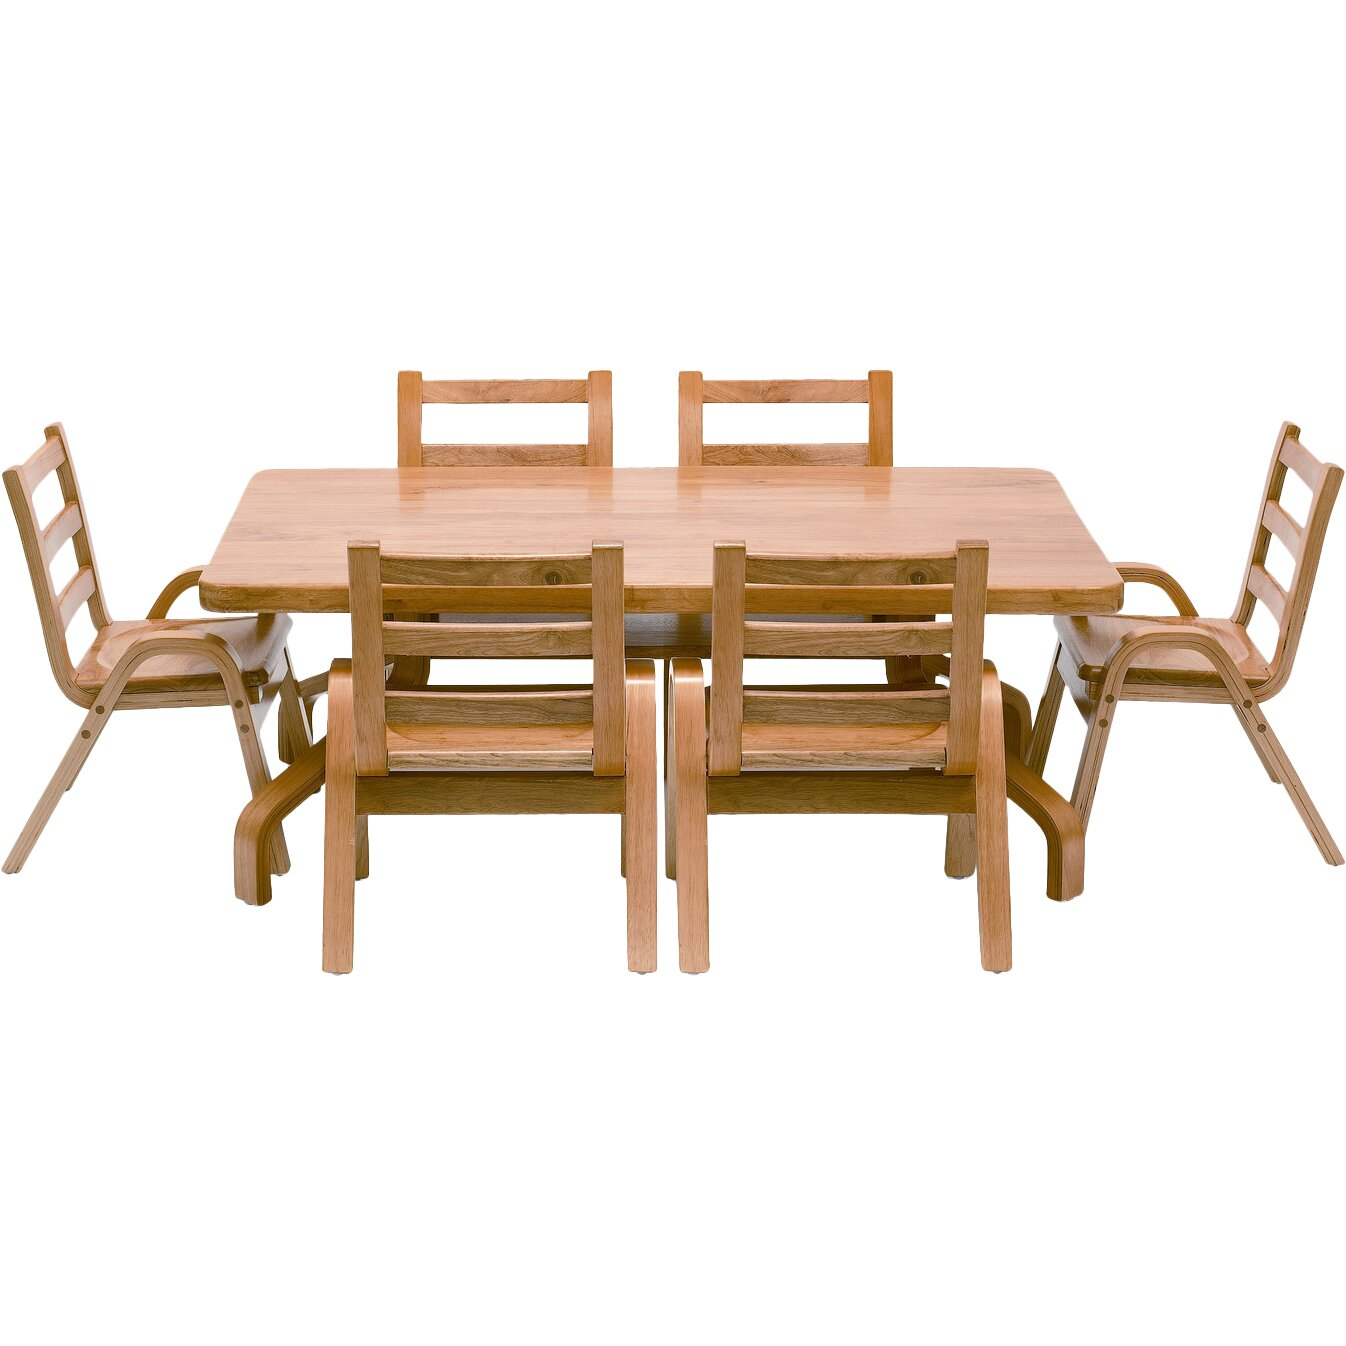 Angeles NaturalWood 20 Rectangle Preschool Table And Chair Set Re